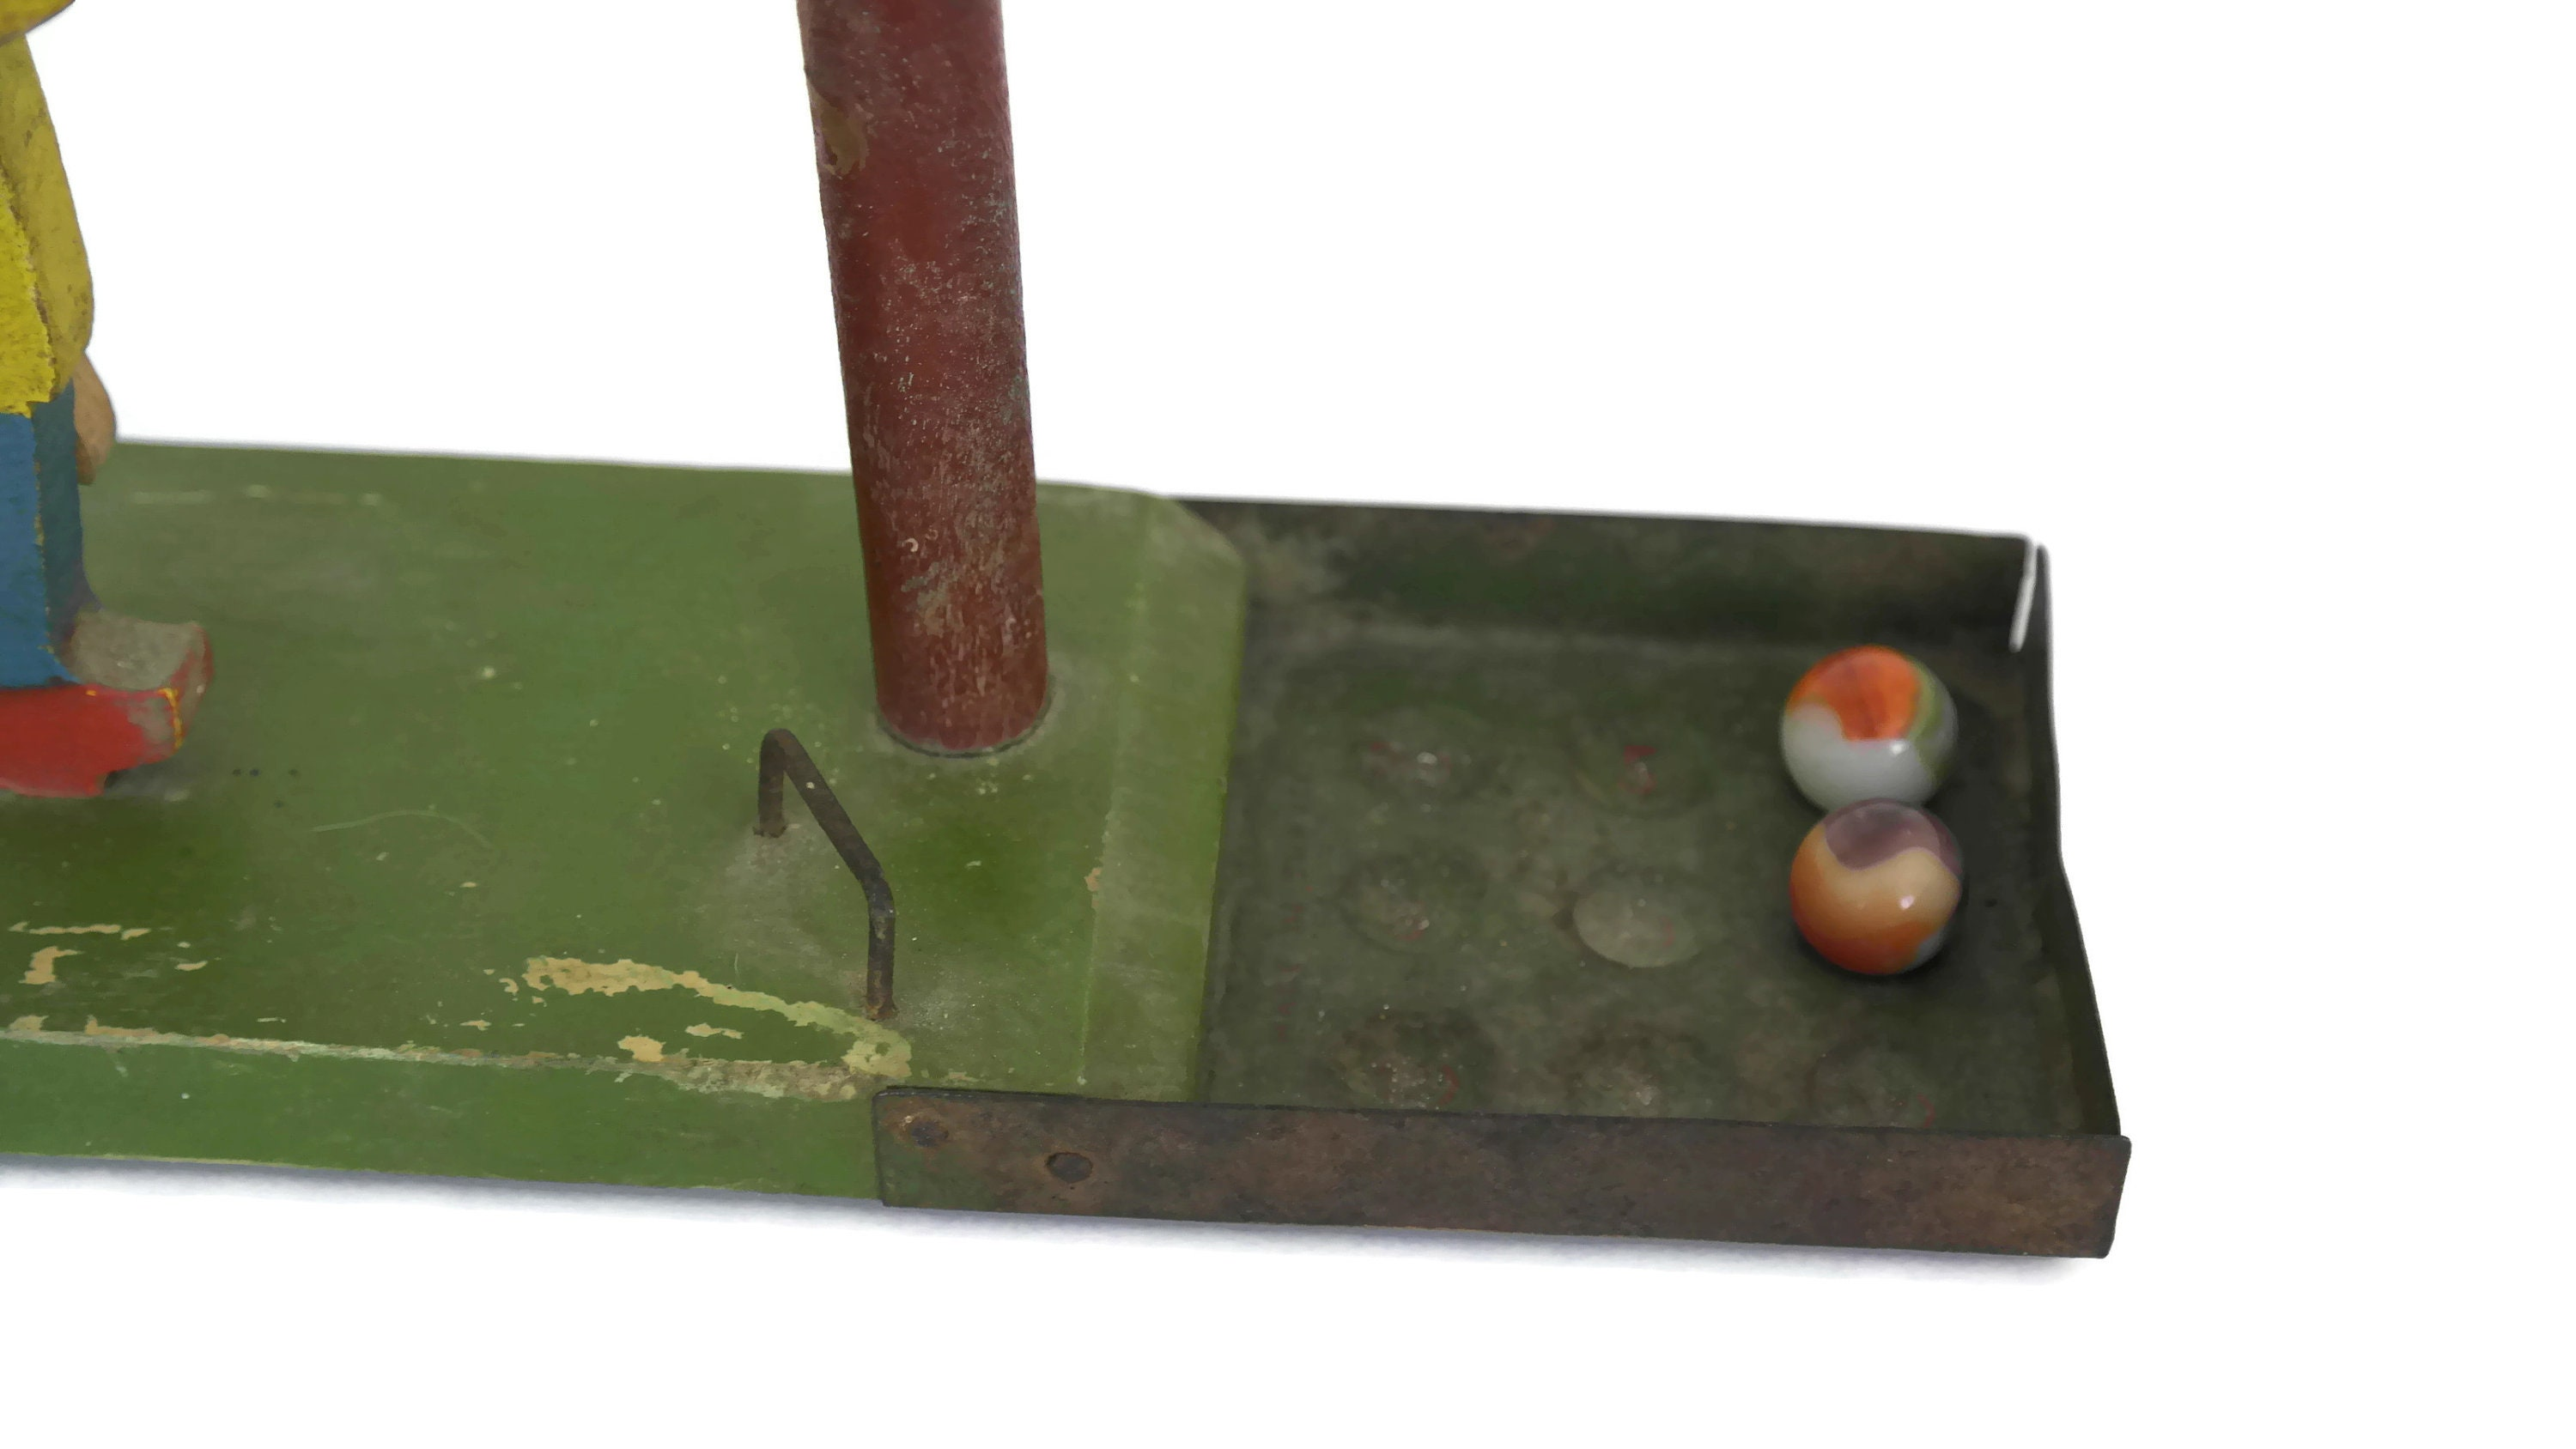 Antique Wooden Marble Run Toy Rustic French Folk Art Game